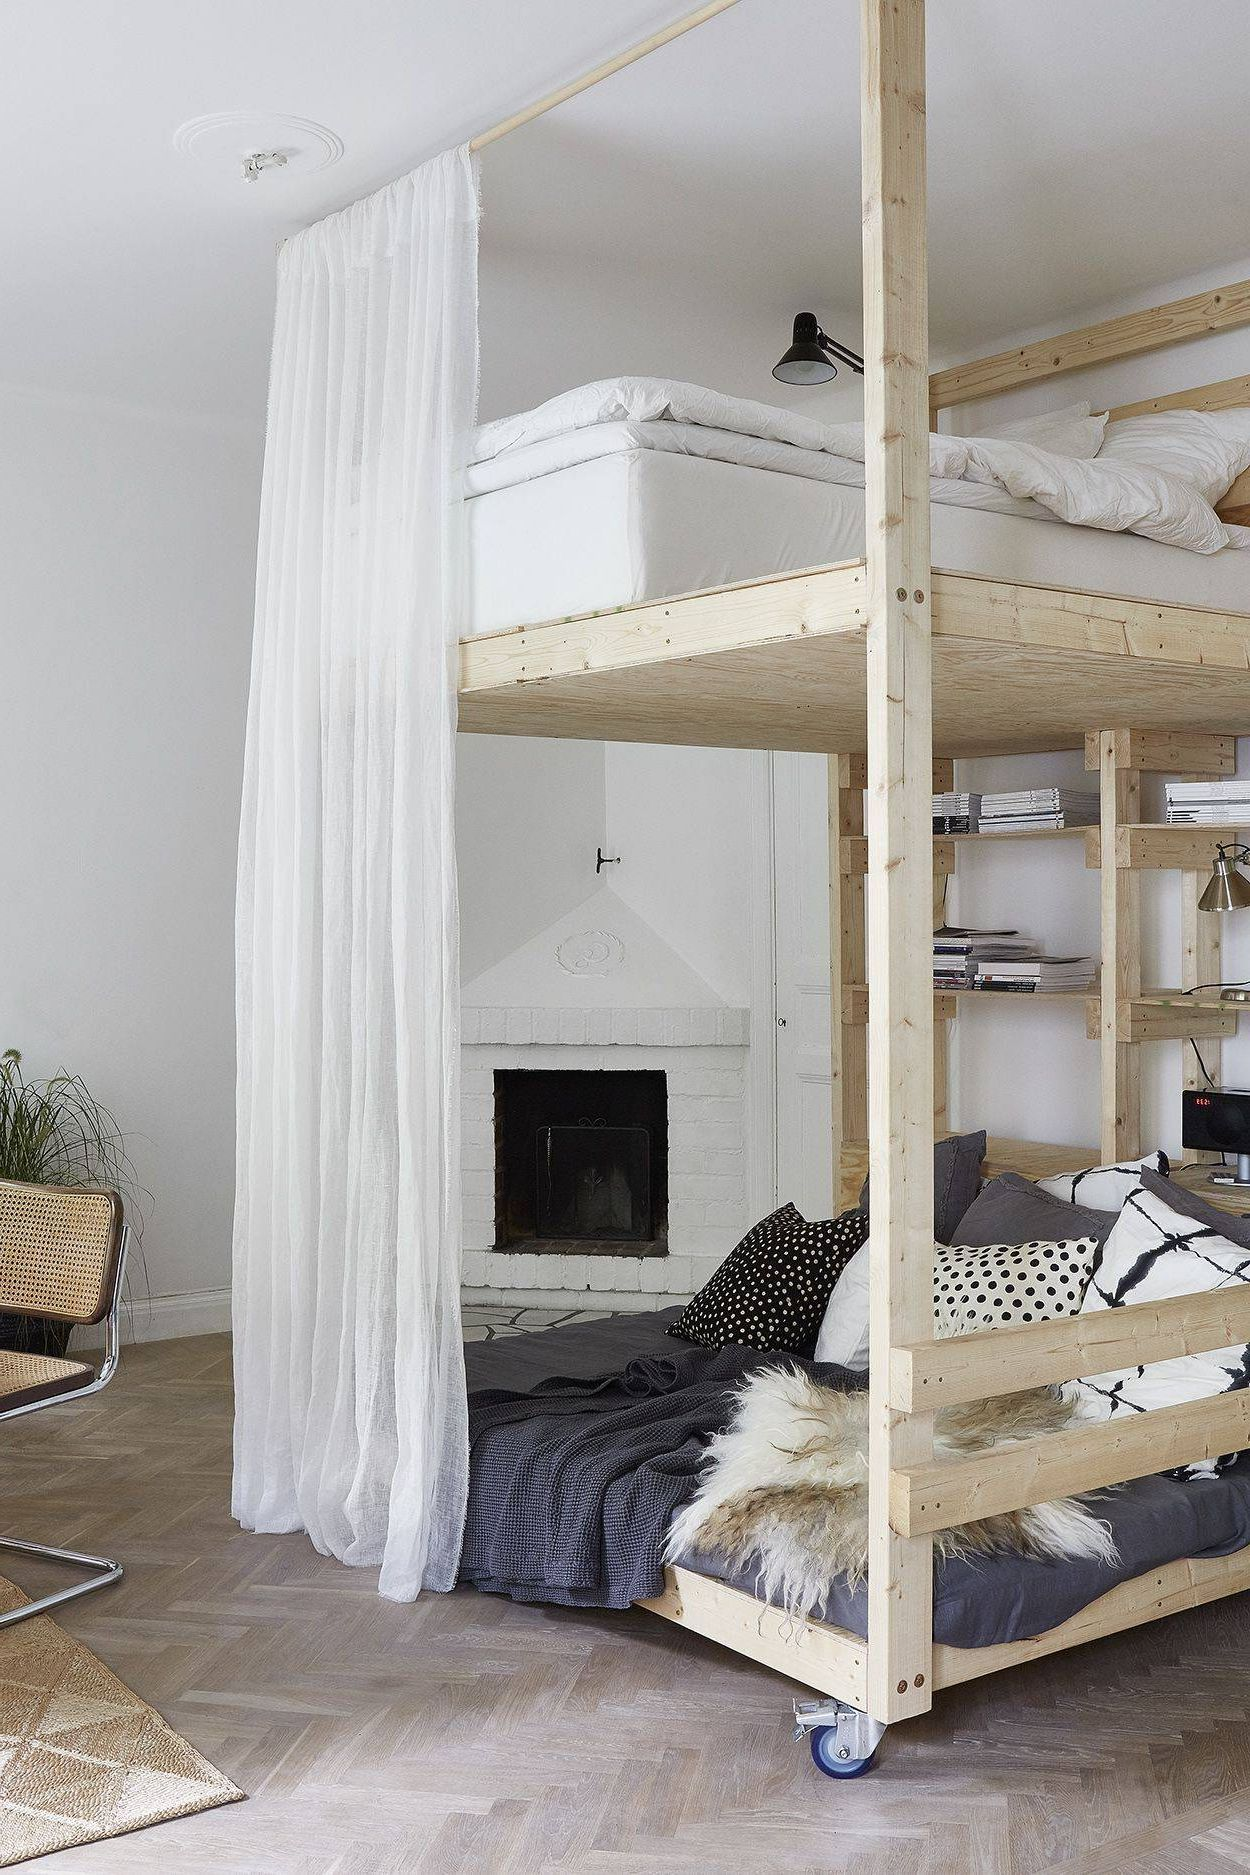 A Bedroom With Adult Bunk Bed Bunk bed decor, Studio